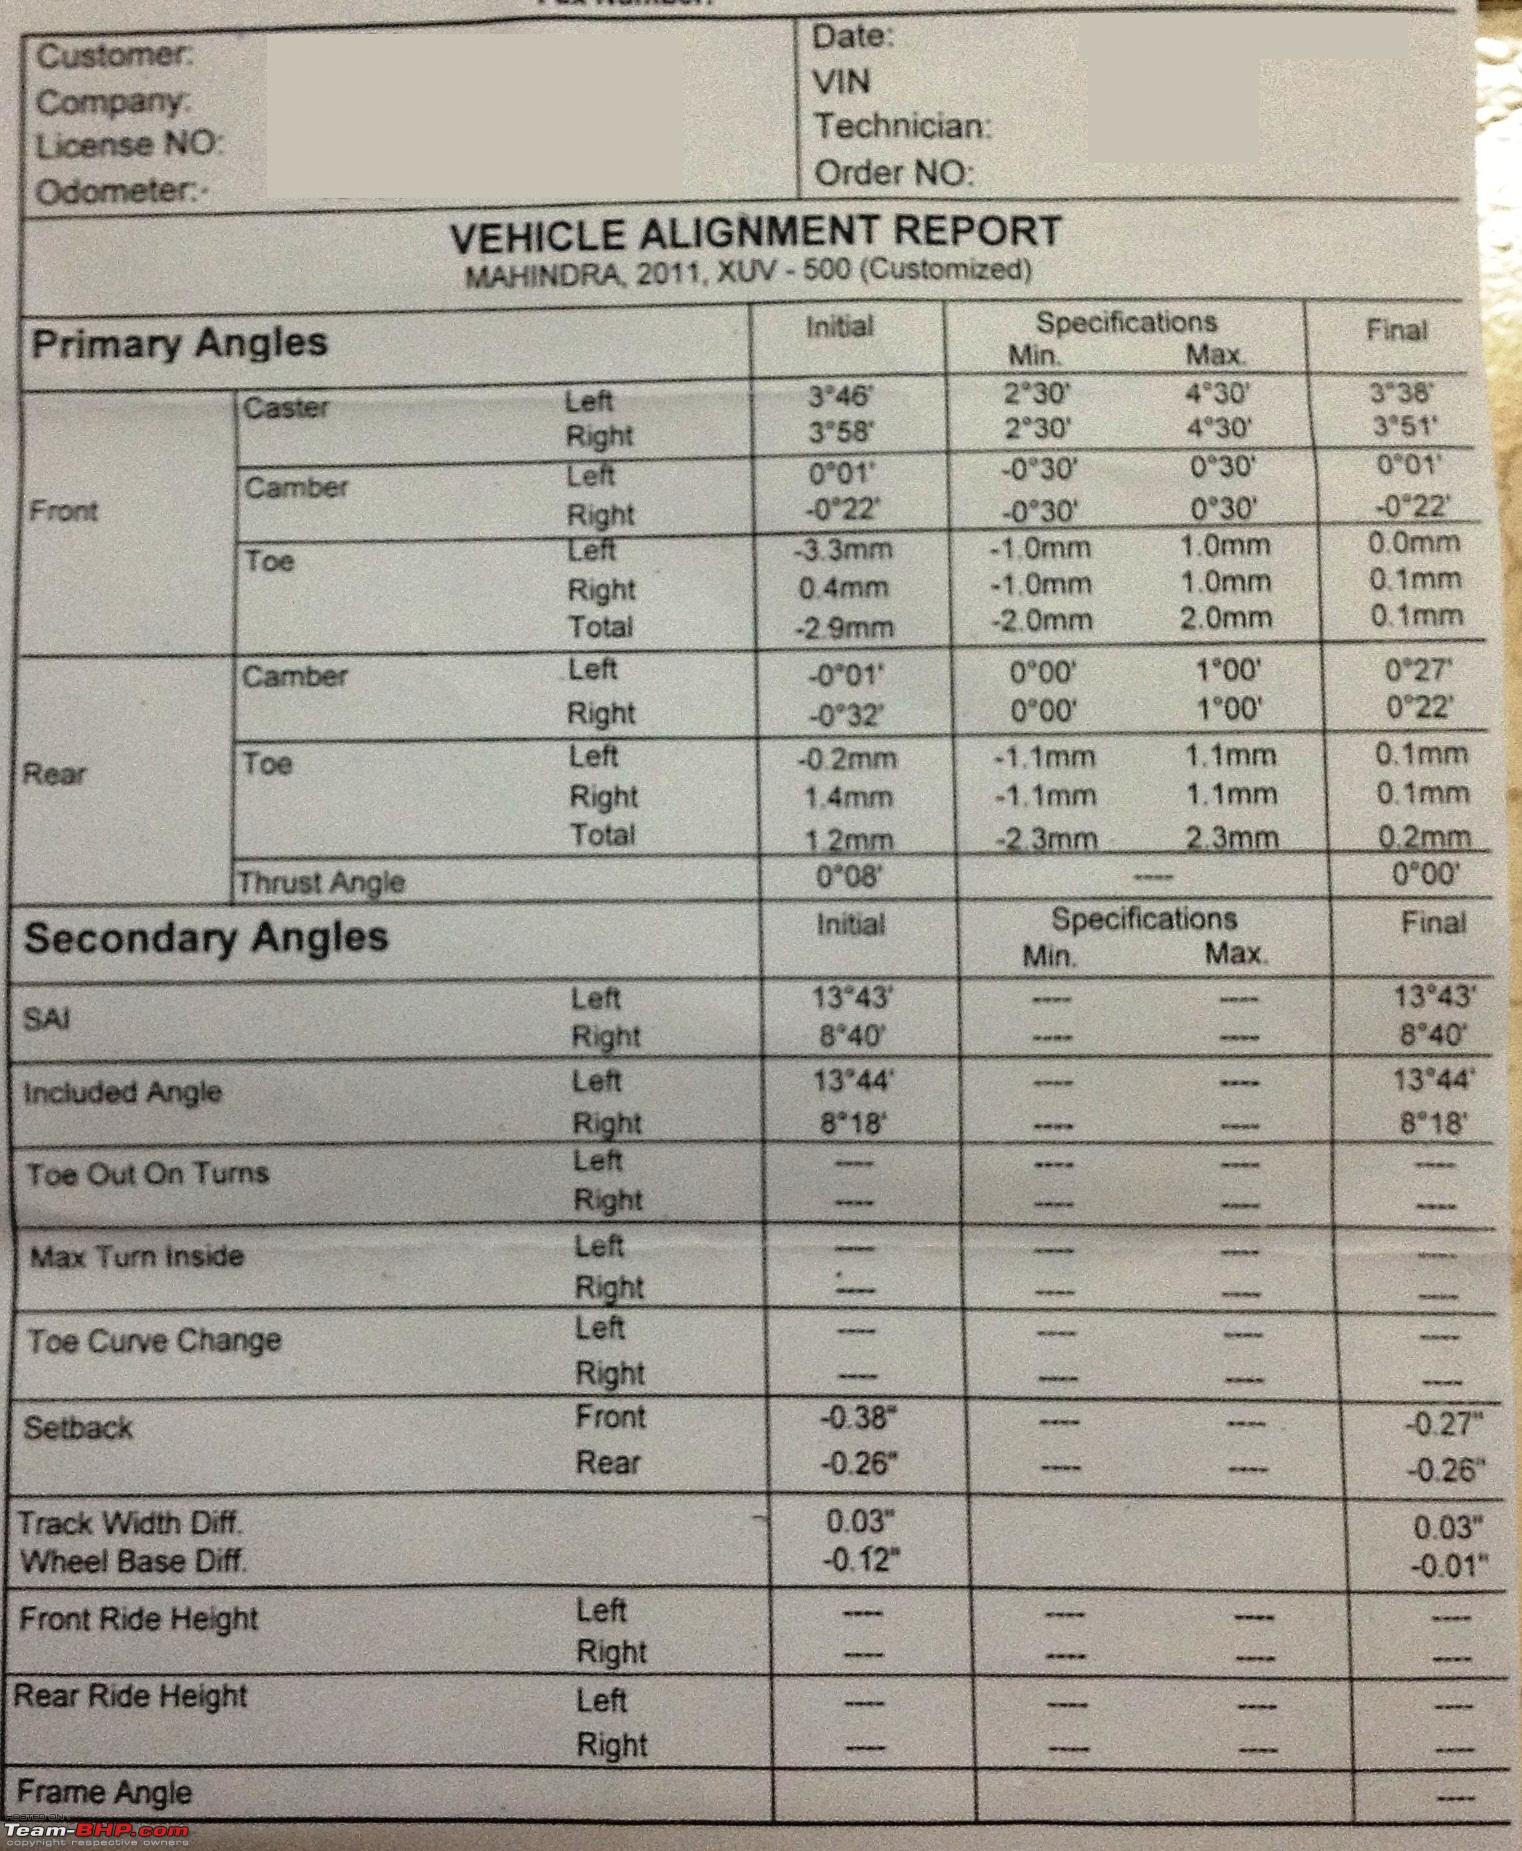 Vehicle Alignment Near Me >> Mahindra XUV500 niggles & solutions - Page 118 - Team-BHP